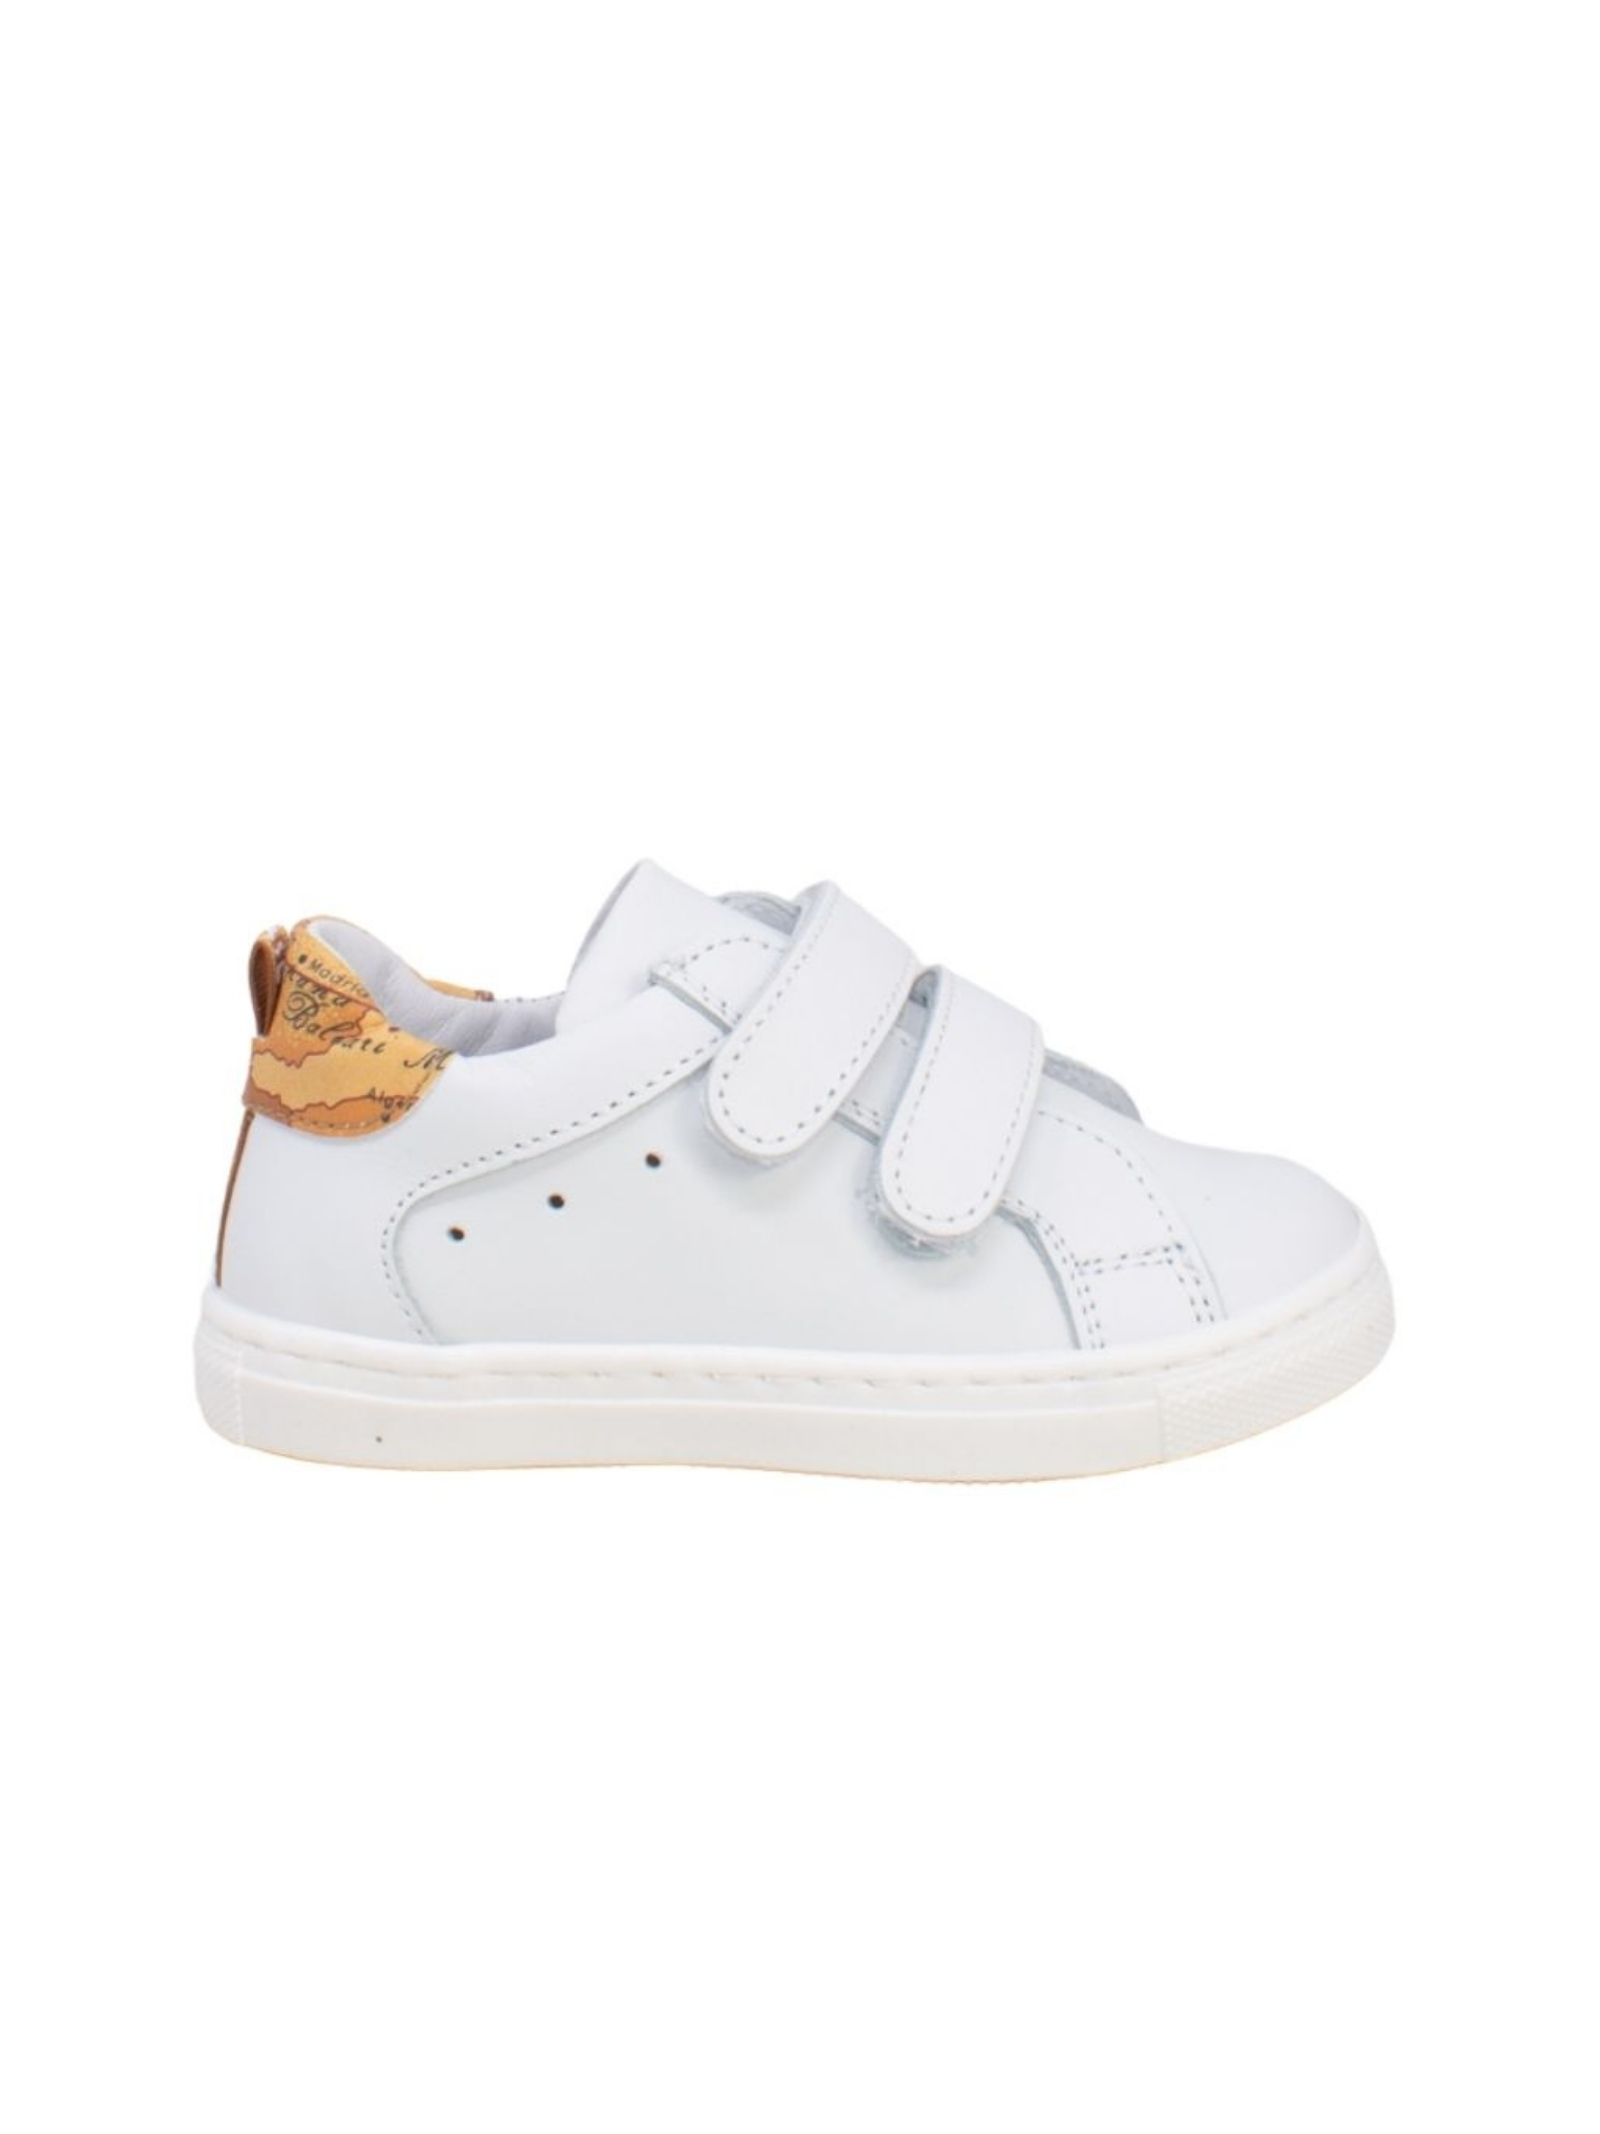 Sneakers Bambino Leather ALVIERO MARTINI 1° CLASSE JUNIOR | Sneakers | 0963X013